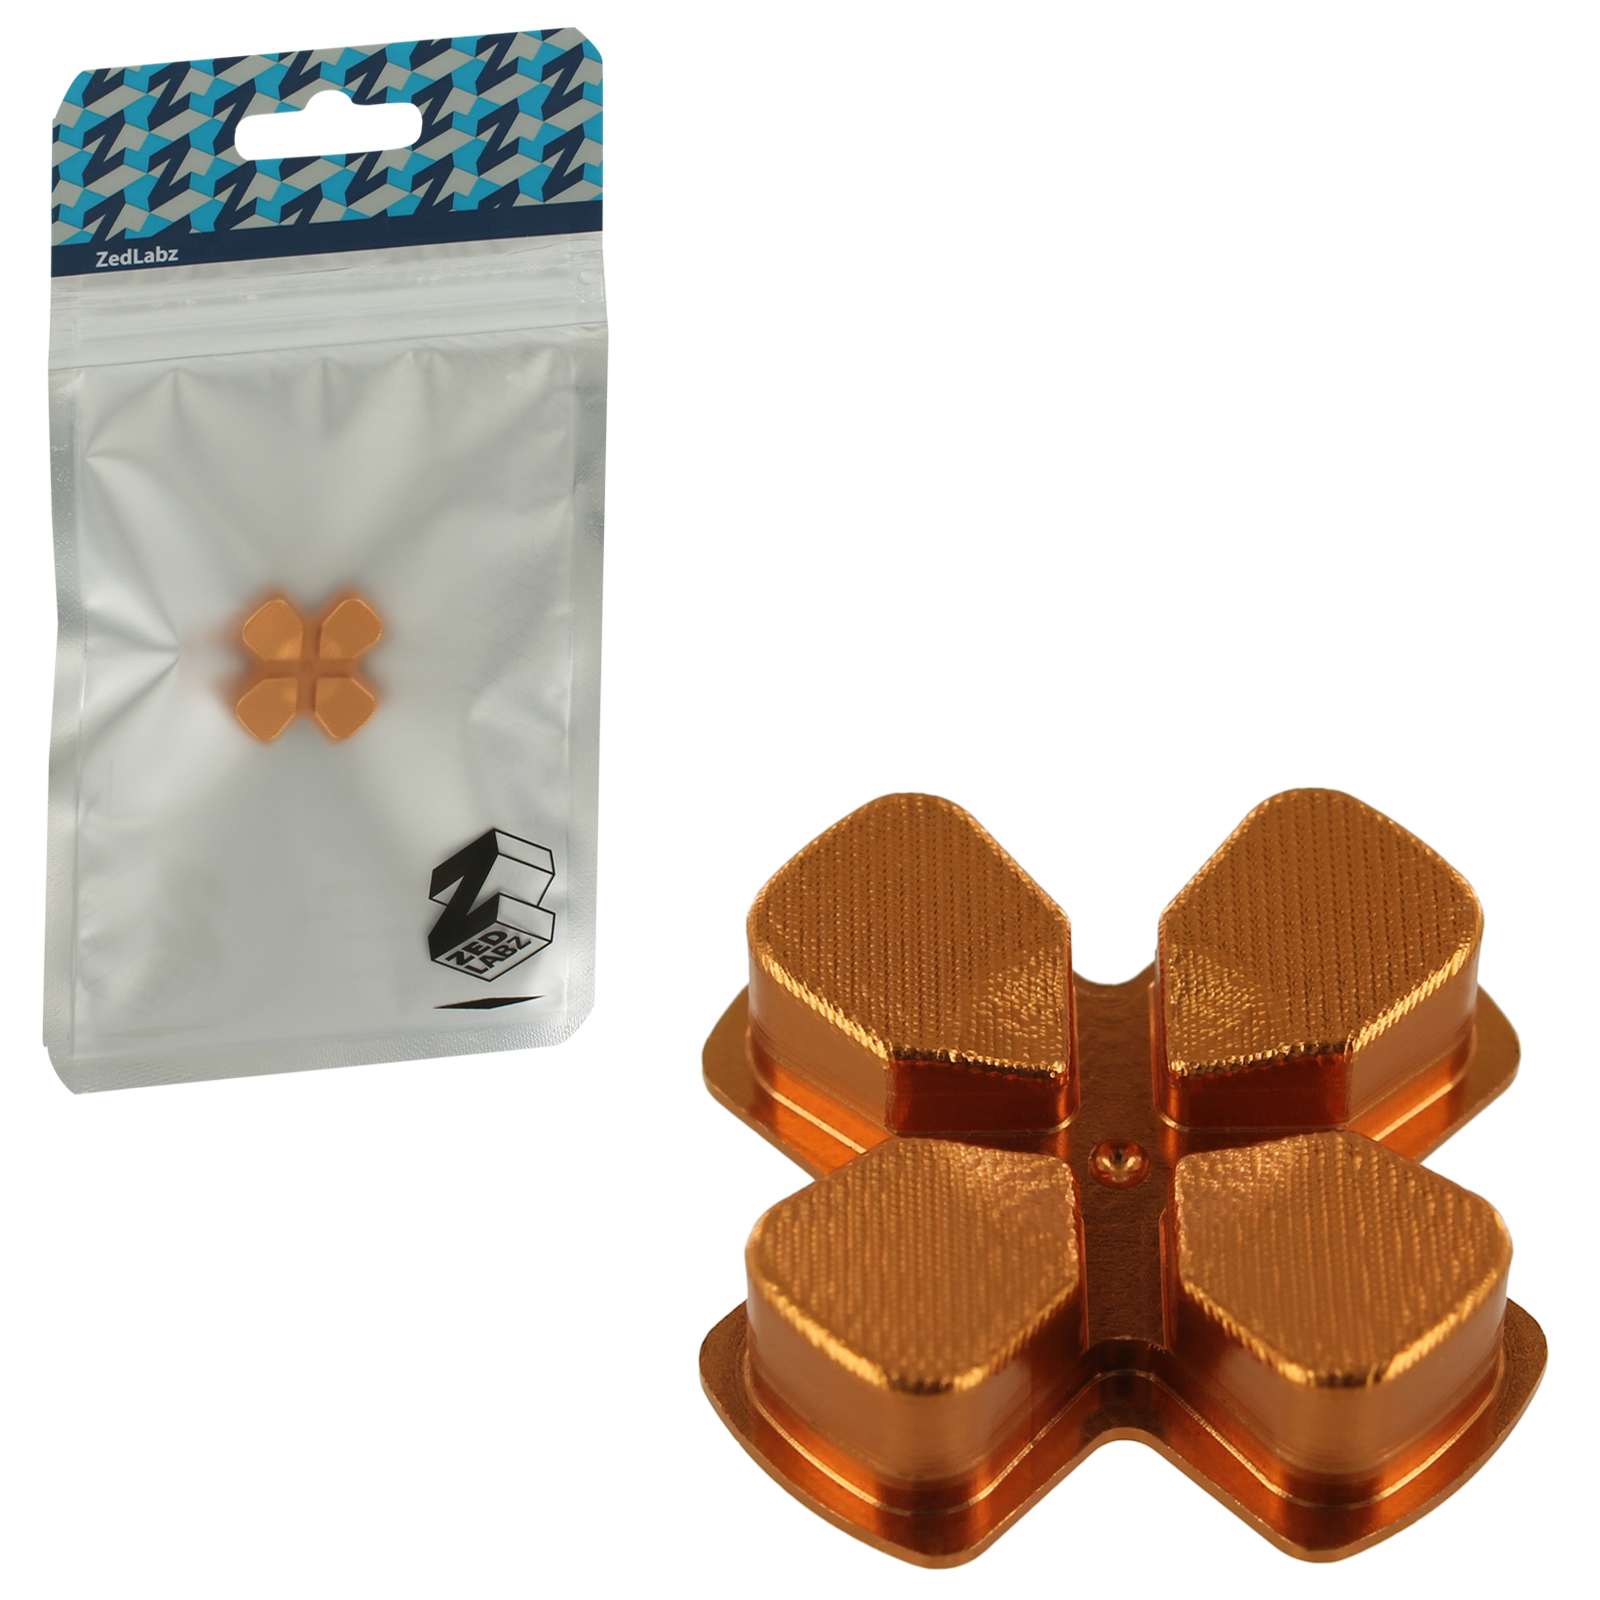 Zedlabz Aluminium Alloy Metal Directional D Pad Arrow Button For Sony Ps4 Controllers - Gold